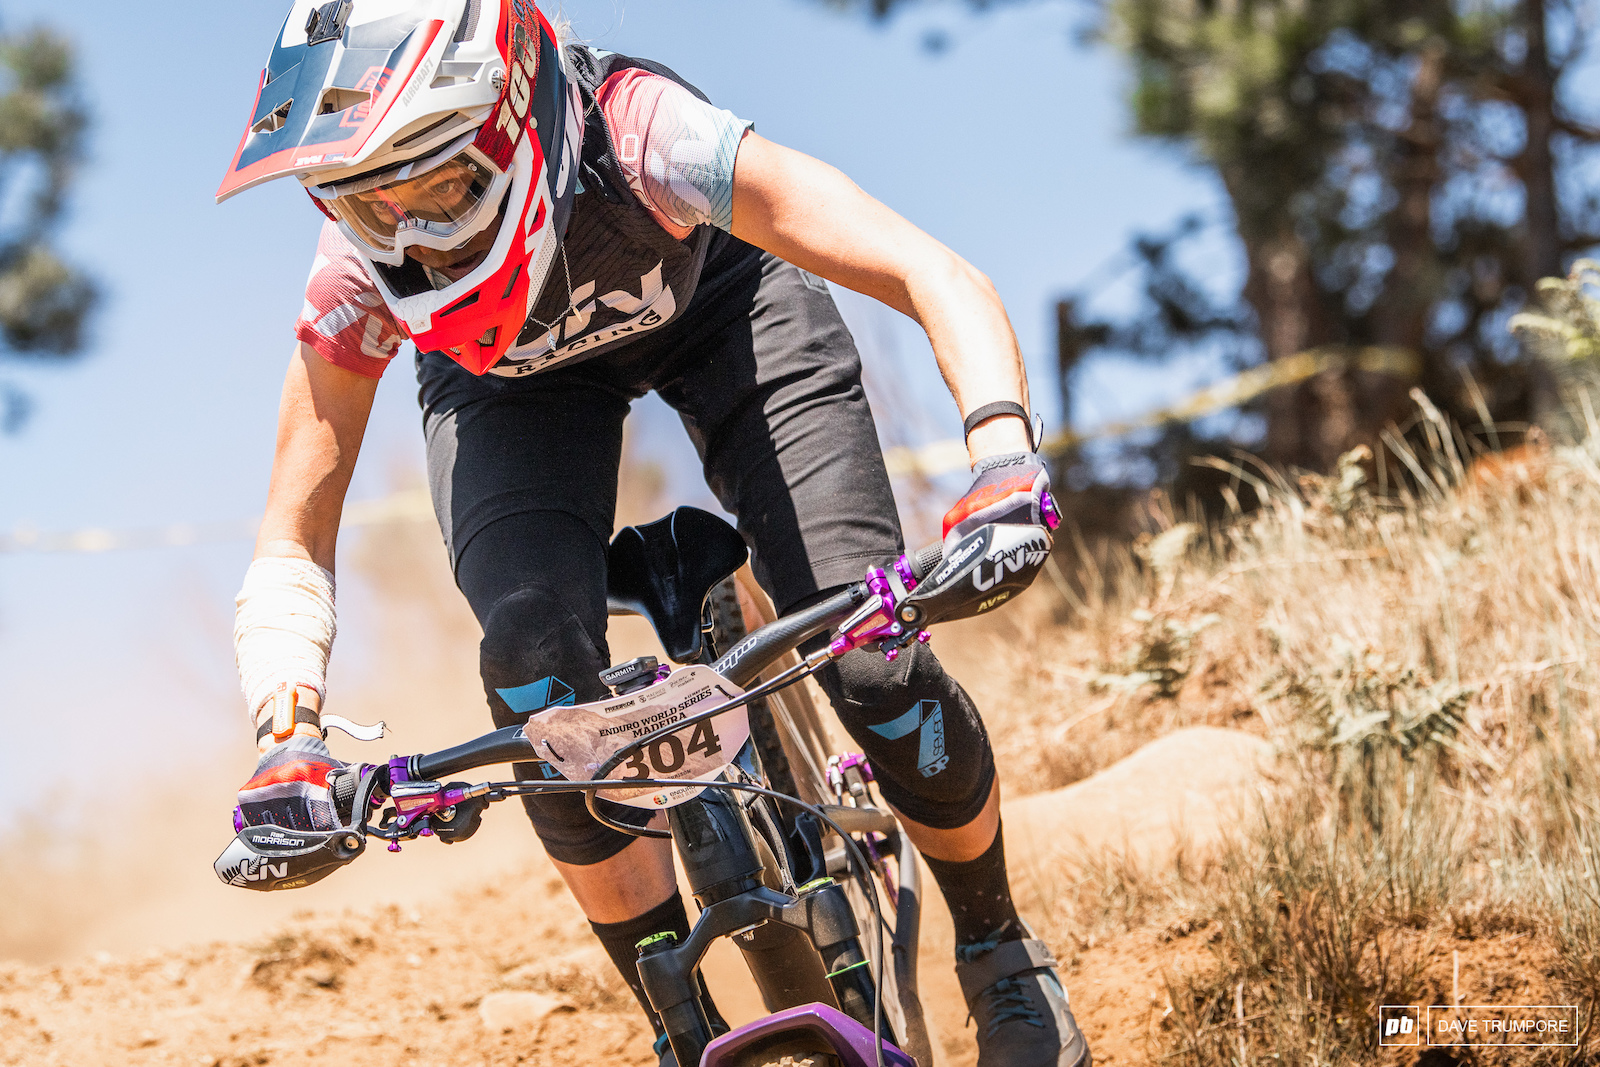 Rae Morrison had some Stage wins this weekend but is still struggling to find her consistency